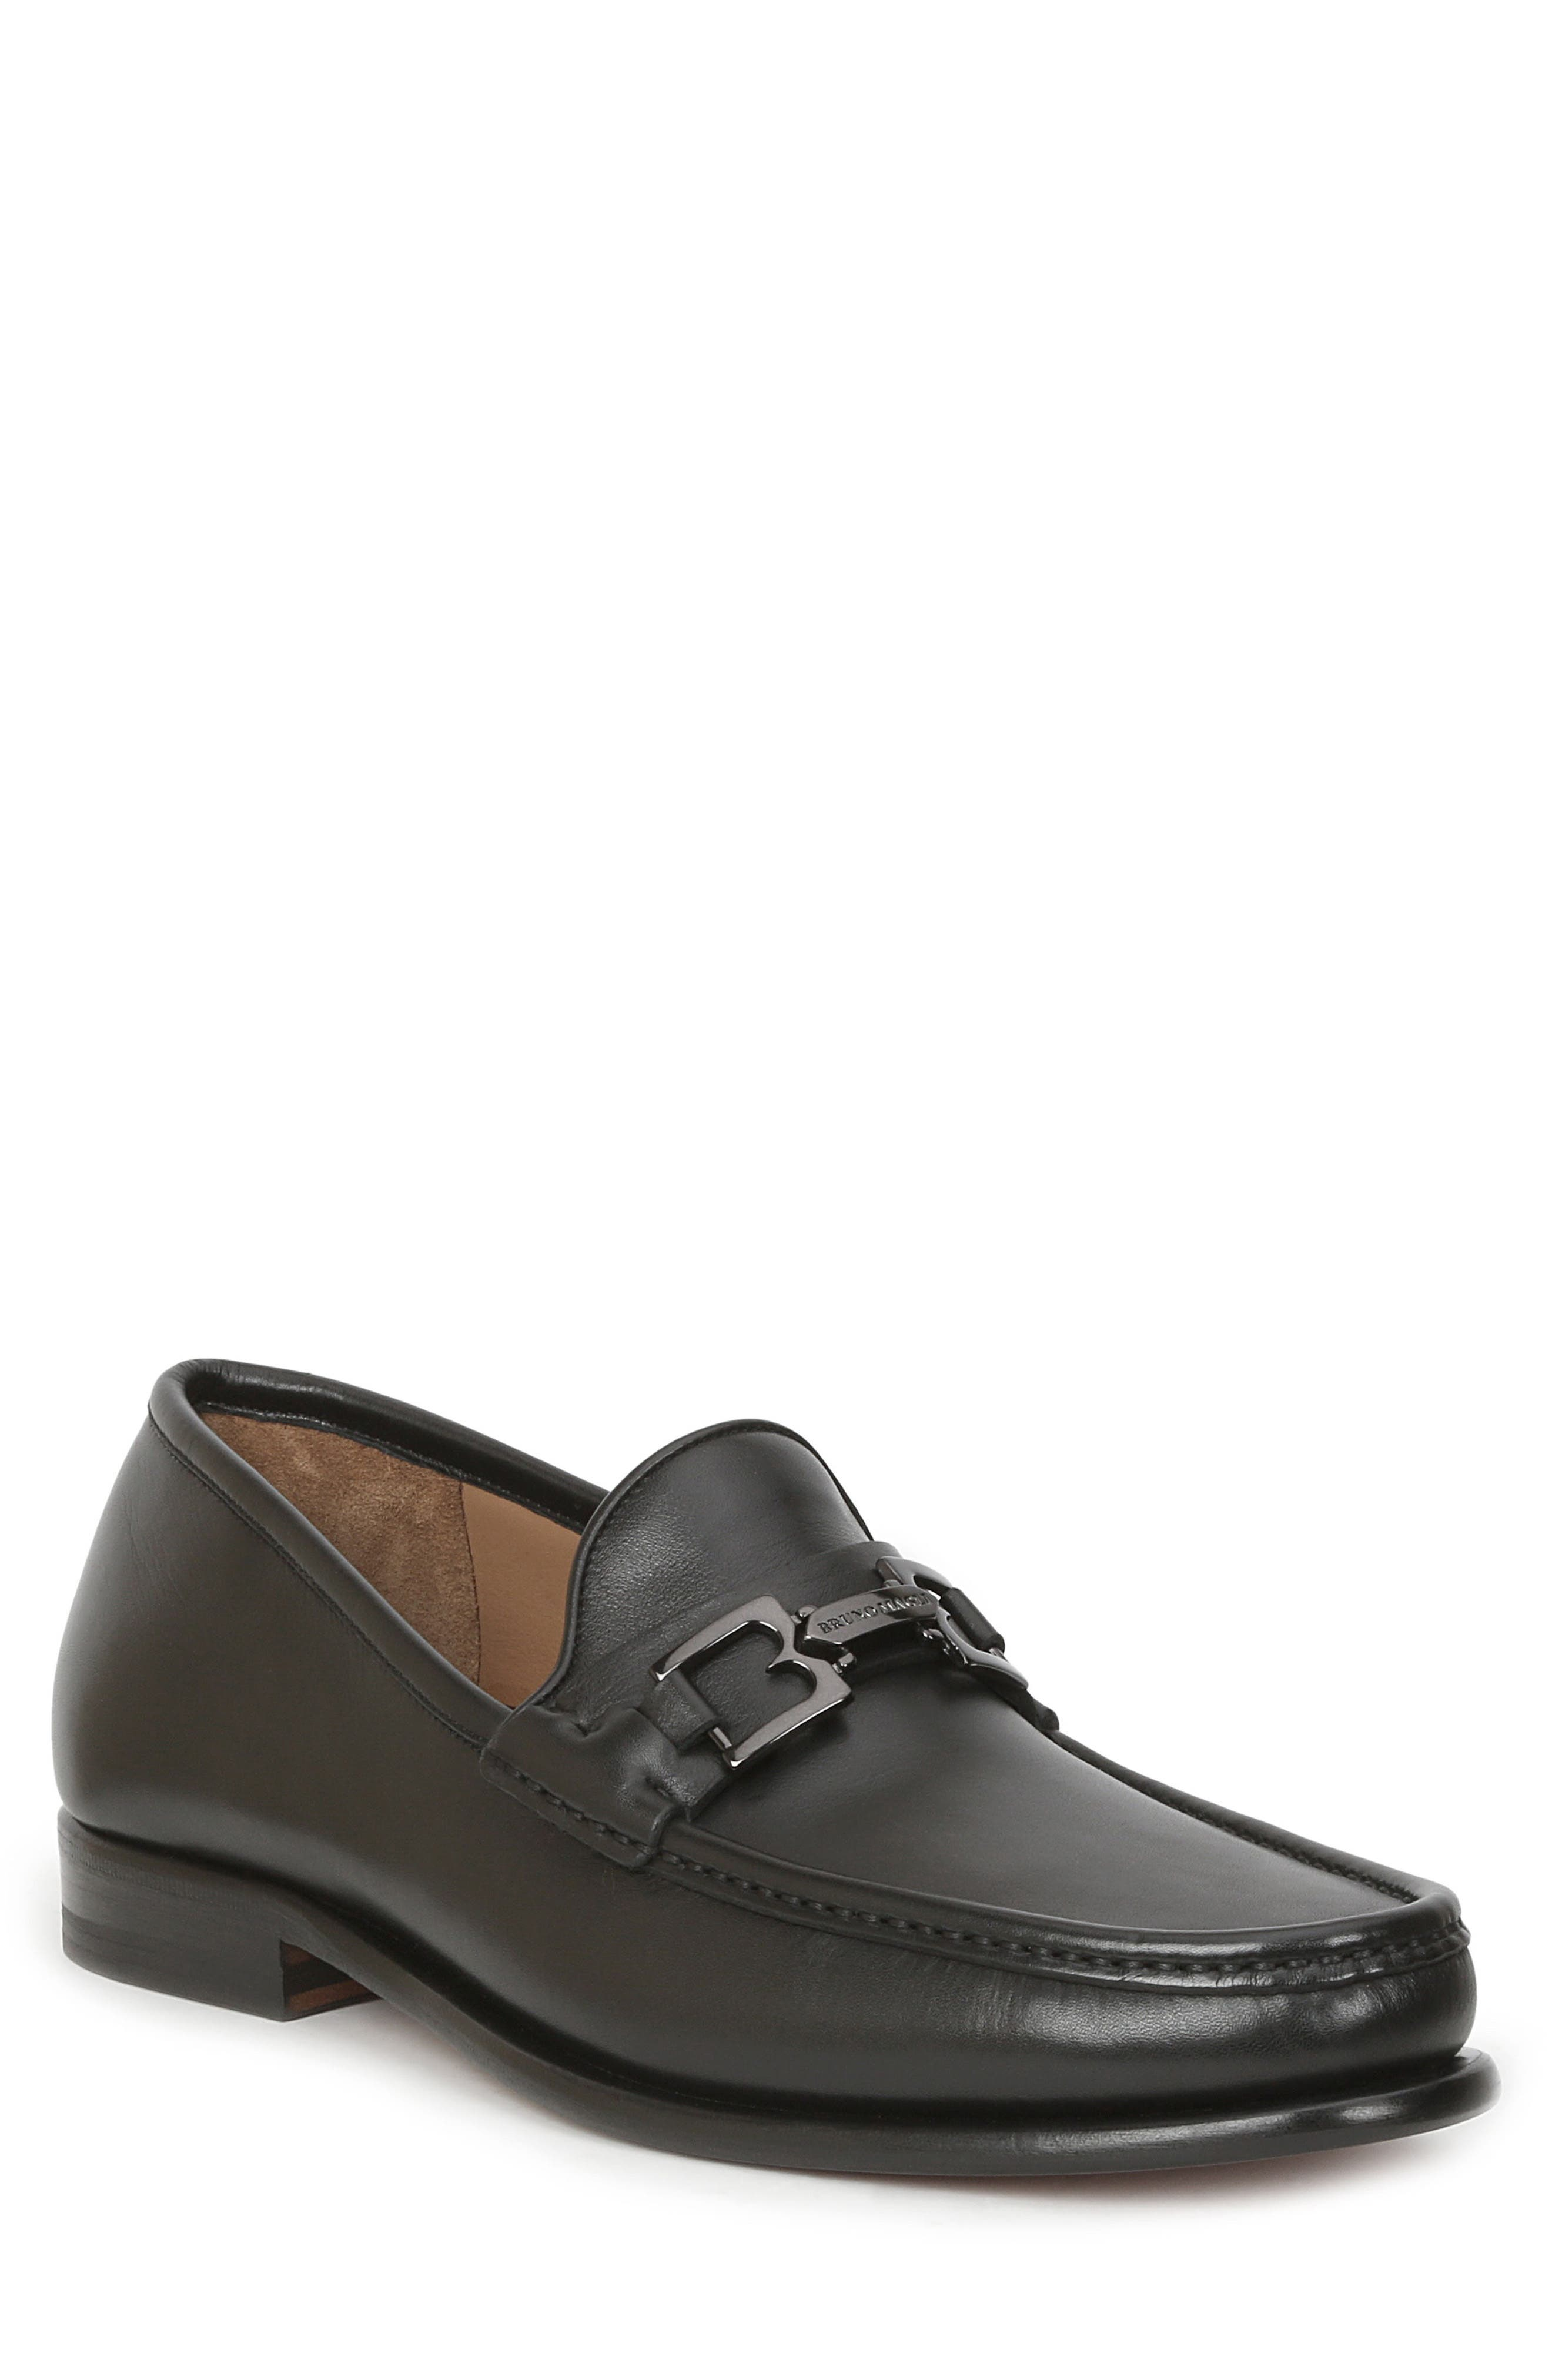 Enzo Bit Loafer,                             Main thumbnail 1, color,                             Black